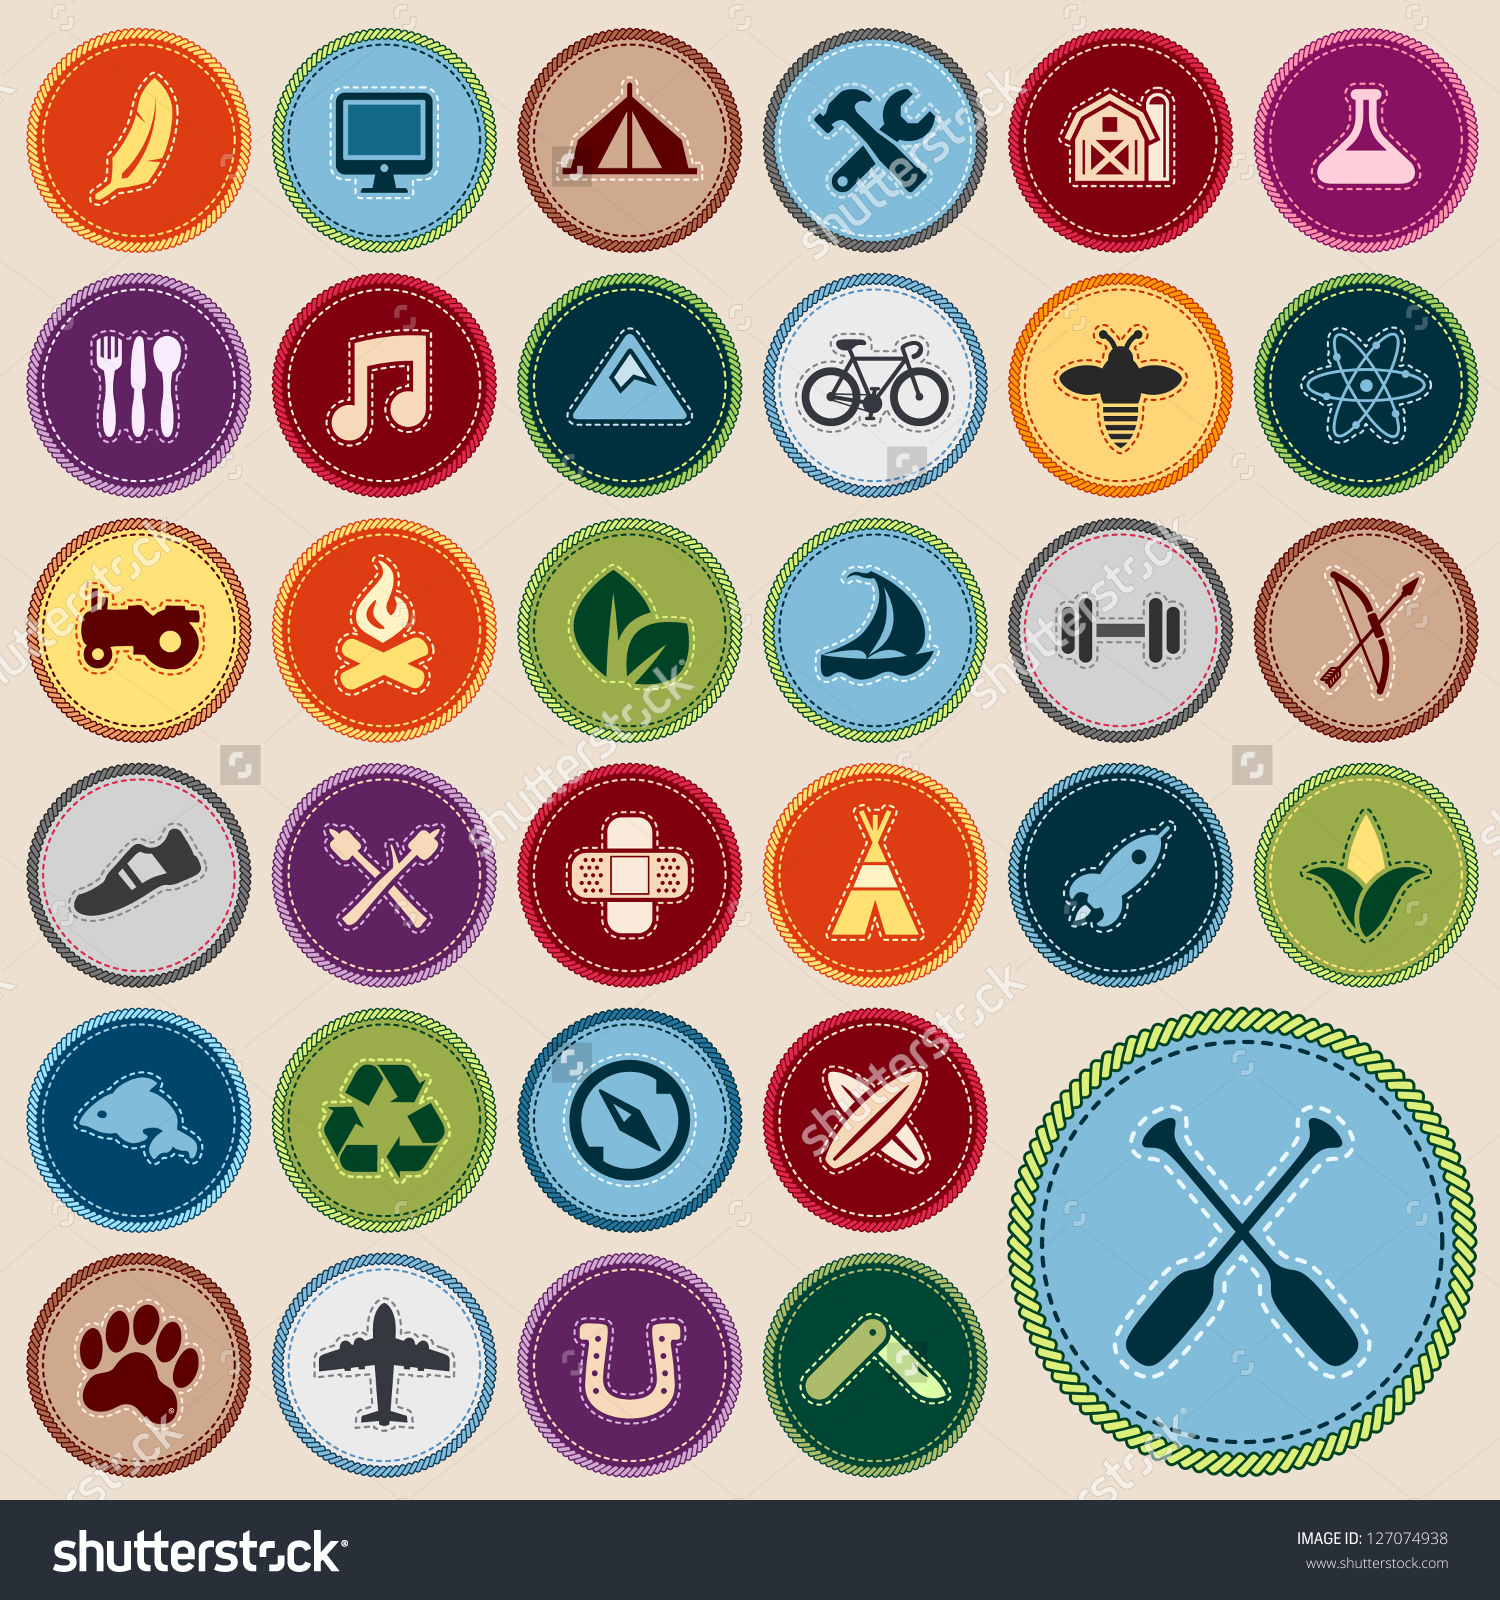 merit clipart stock vector set of scout merit badges for outdoor and ...